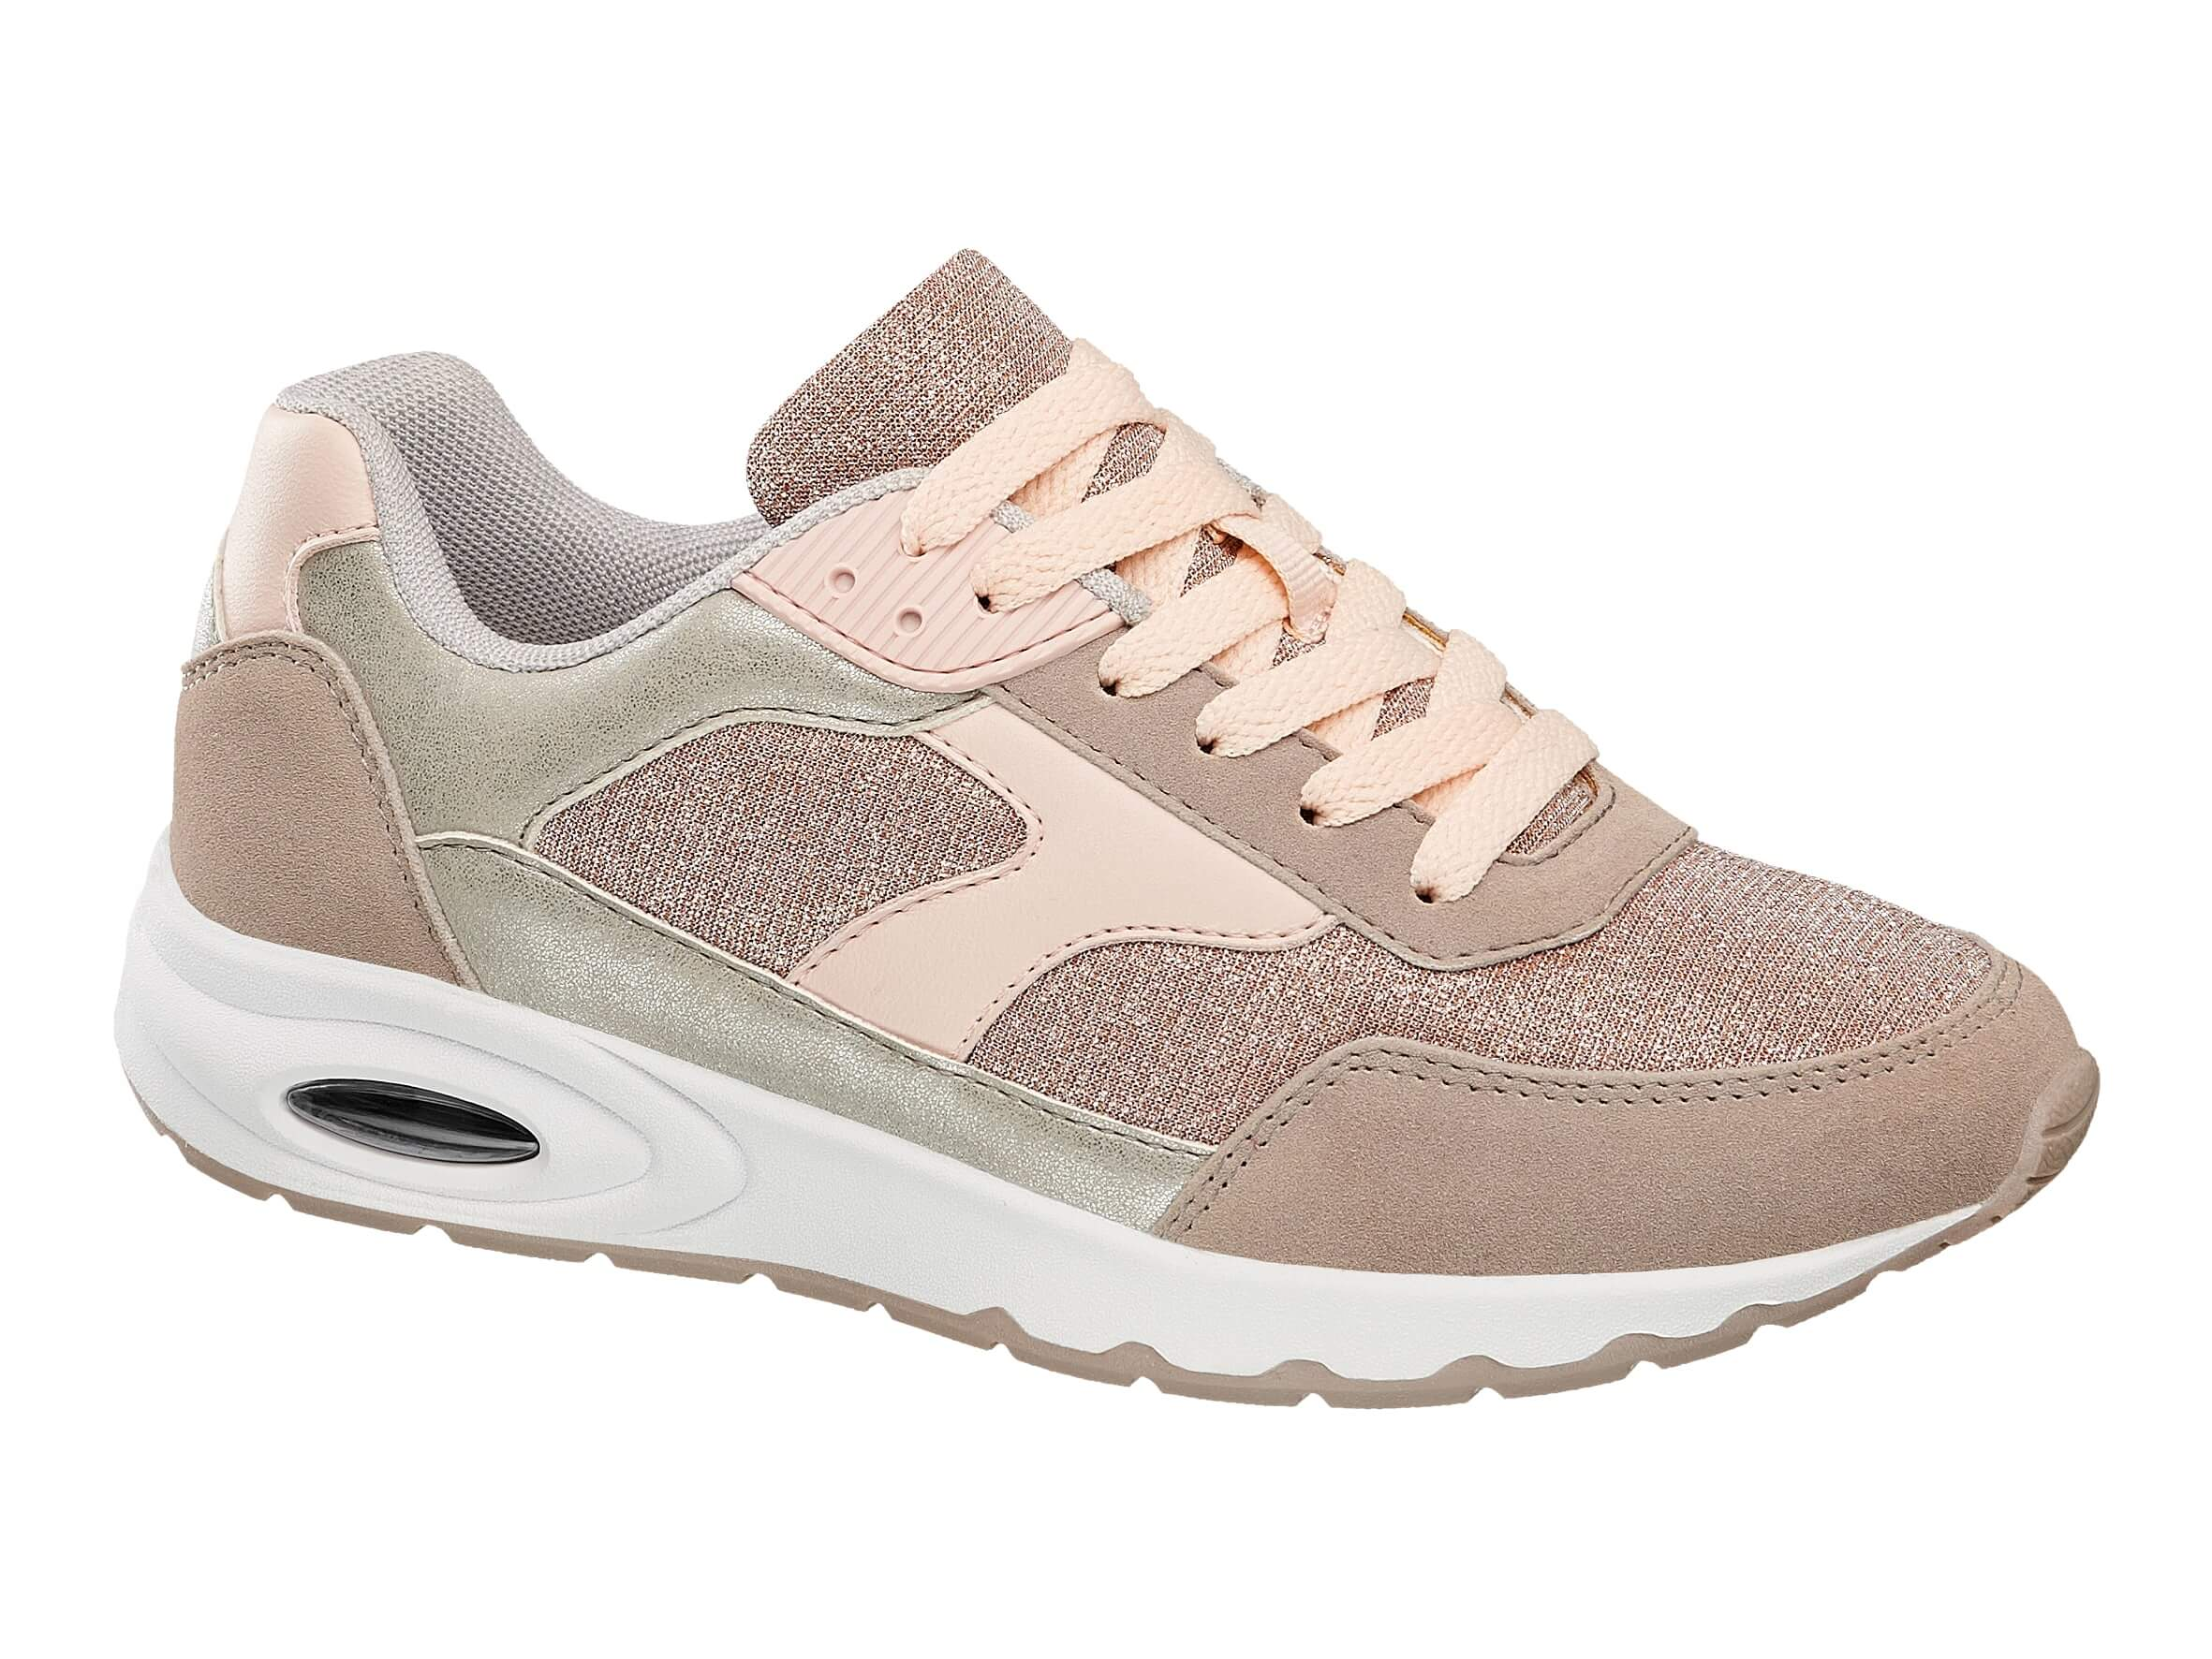 5ef2f81e9667f Add a stylish finish to your off duty vibe with a pair of rose gold  trainers. A must-have for summer, these Graceland grey and rose gold  trainers can be ...